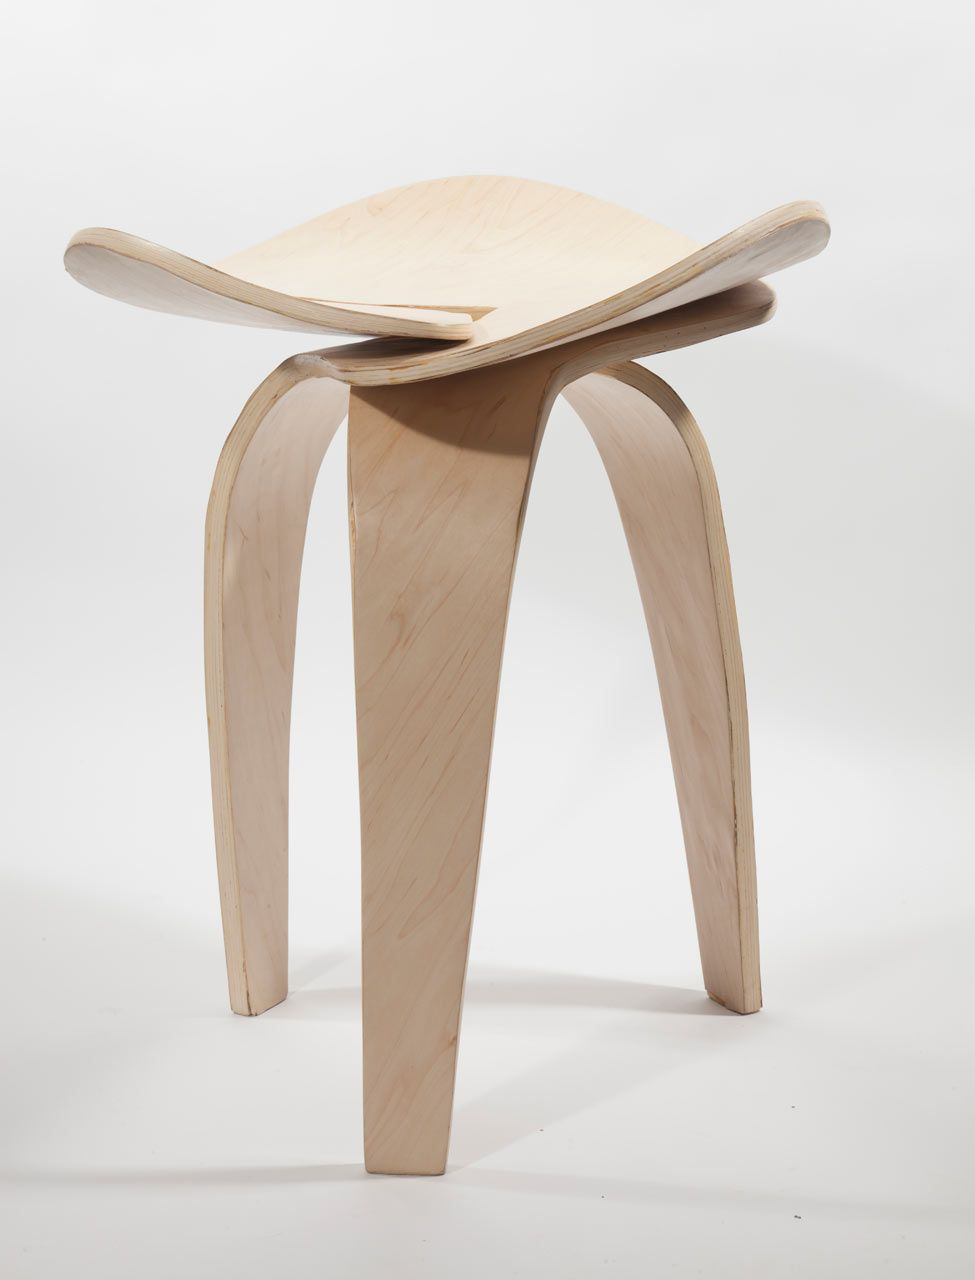 Trio: A Jointless Stool By Andrea Quiros Balma. Made Of Three Symmetrical  Pieces Of Bent Plywood That Connect Together Into A Jointless Form.